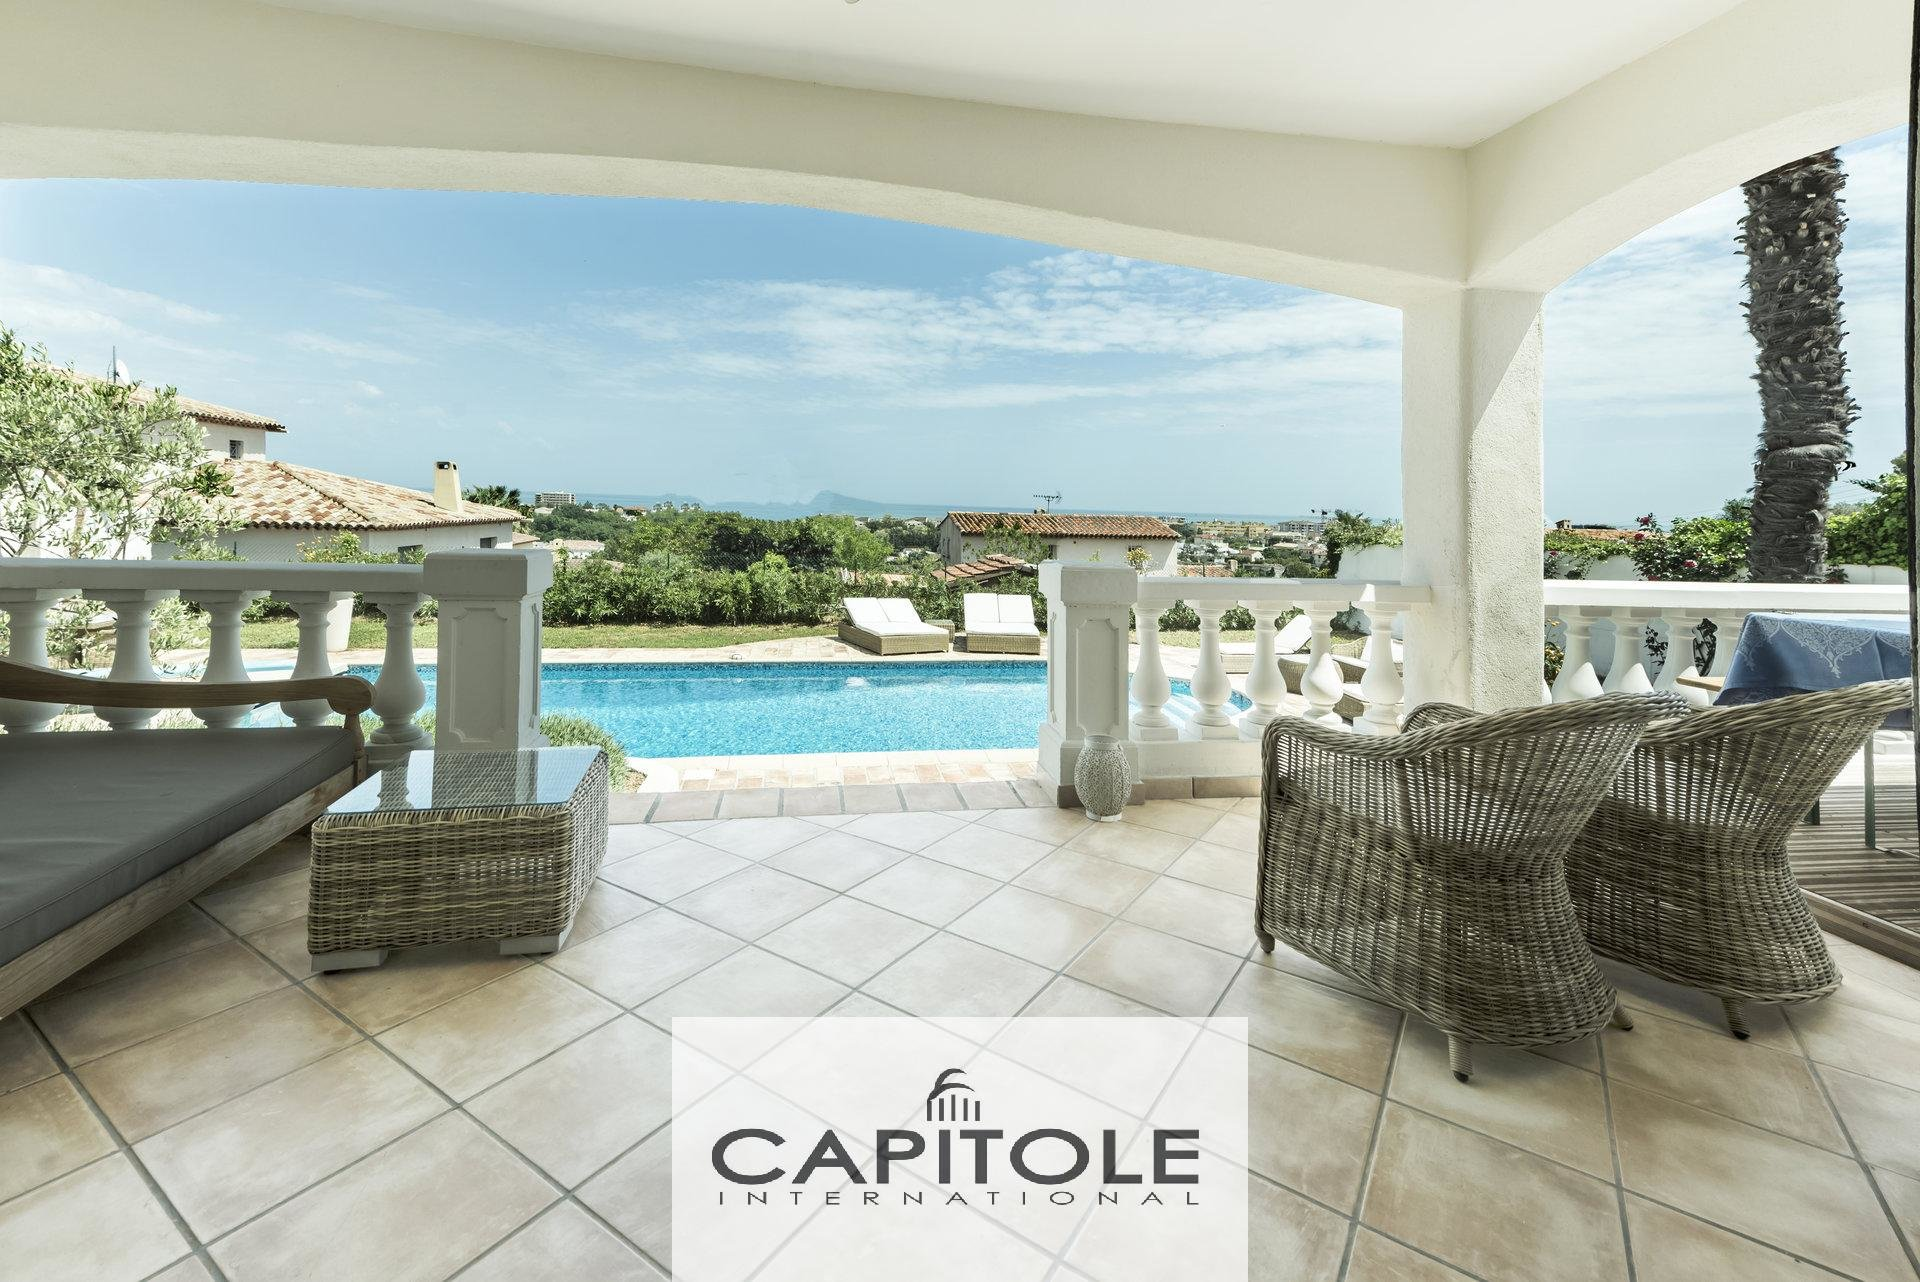 For sale, Antibes sole agent, 5 bed sea view villa, swimming pool,